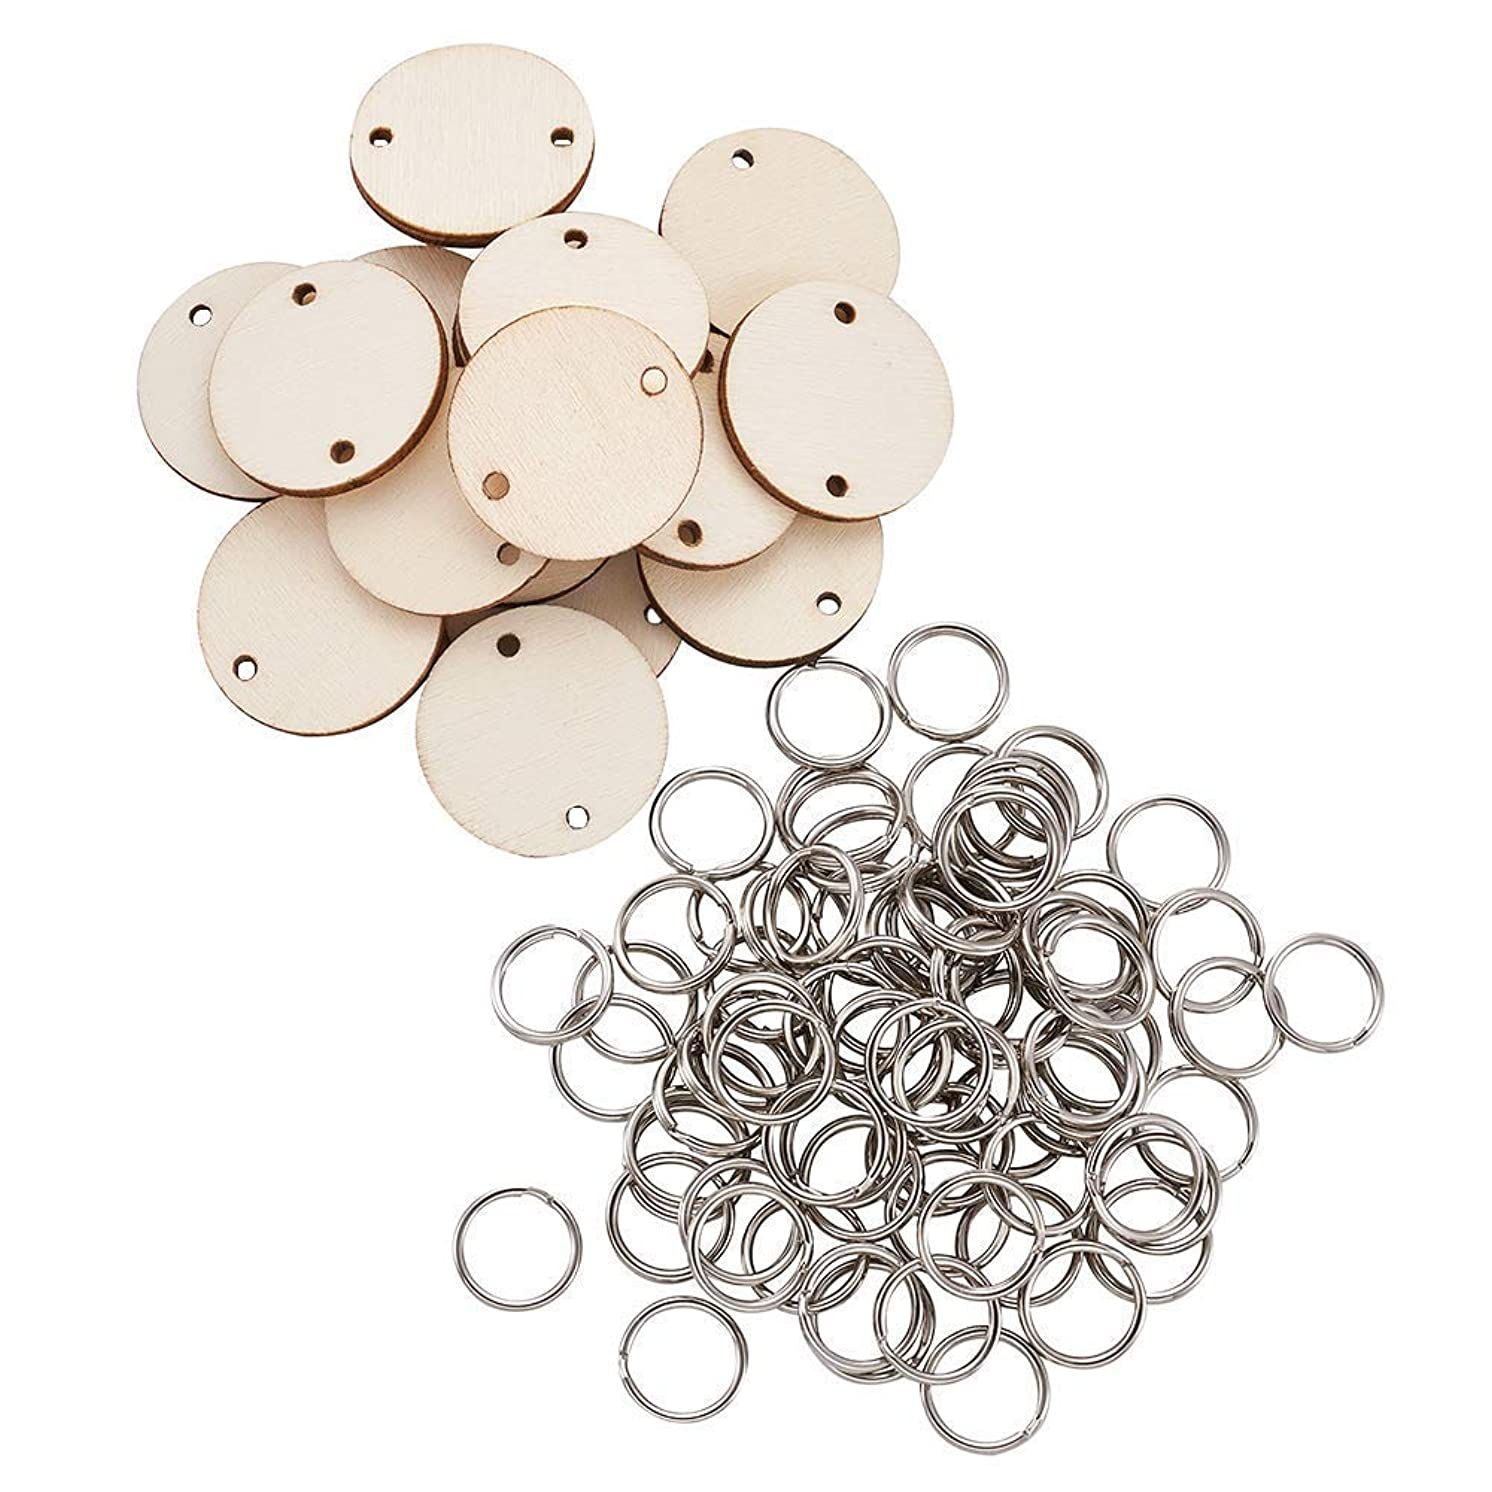 Pandahall 100pcs 30x2.5mm Flat Round Wooden Tags with Holes 12 mm Platinum Plated Iron Split Key Rings for Birthday Boards, Valentine Jewelry Making